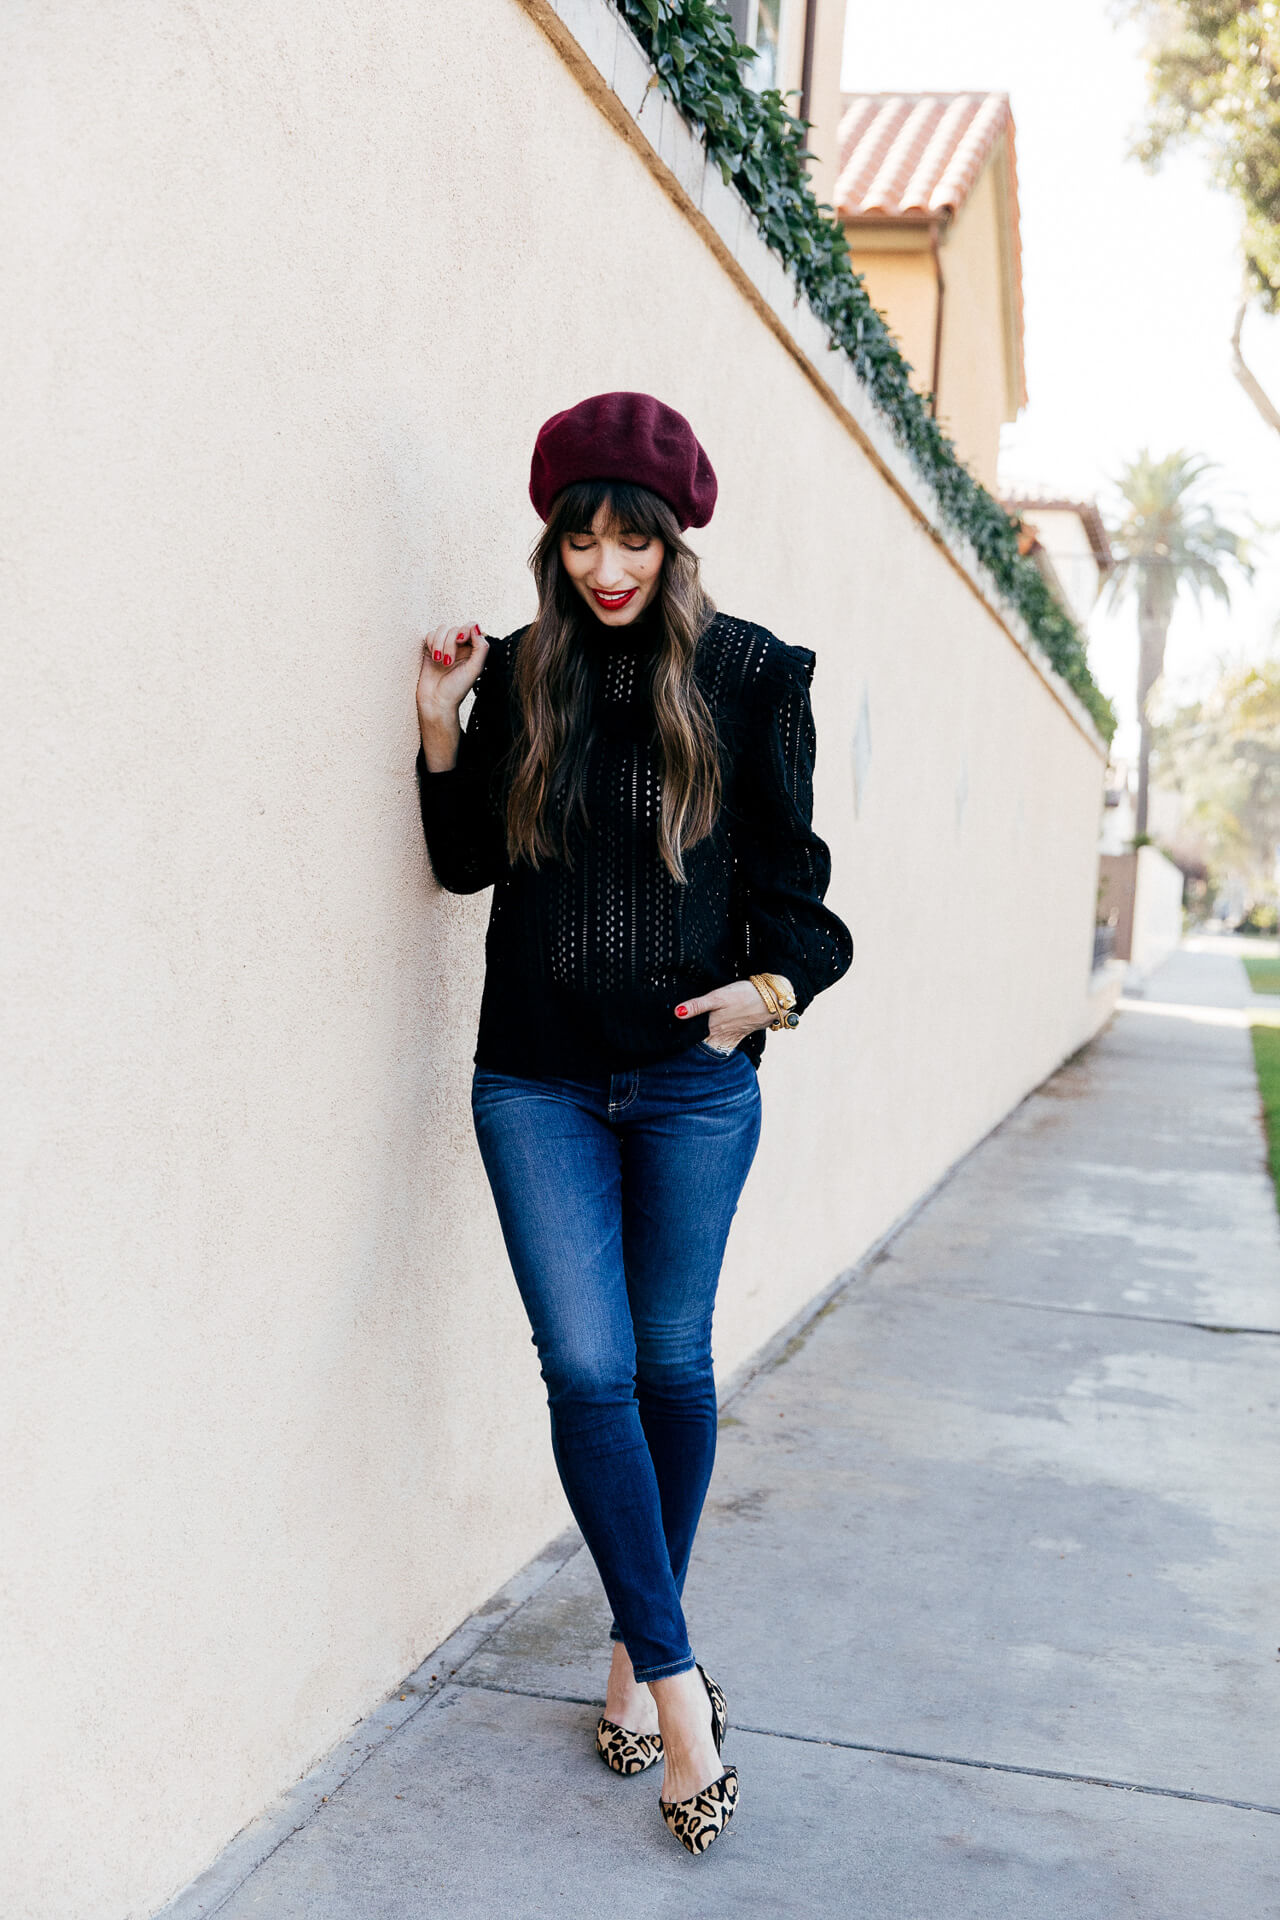 Romantic outfit inspiration! | M Loves M @marmar